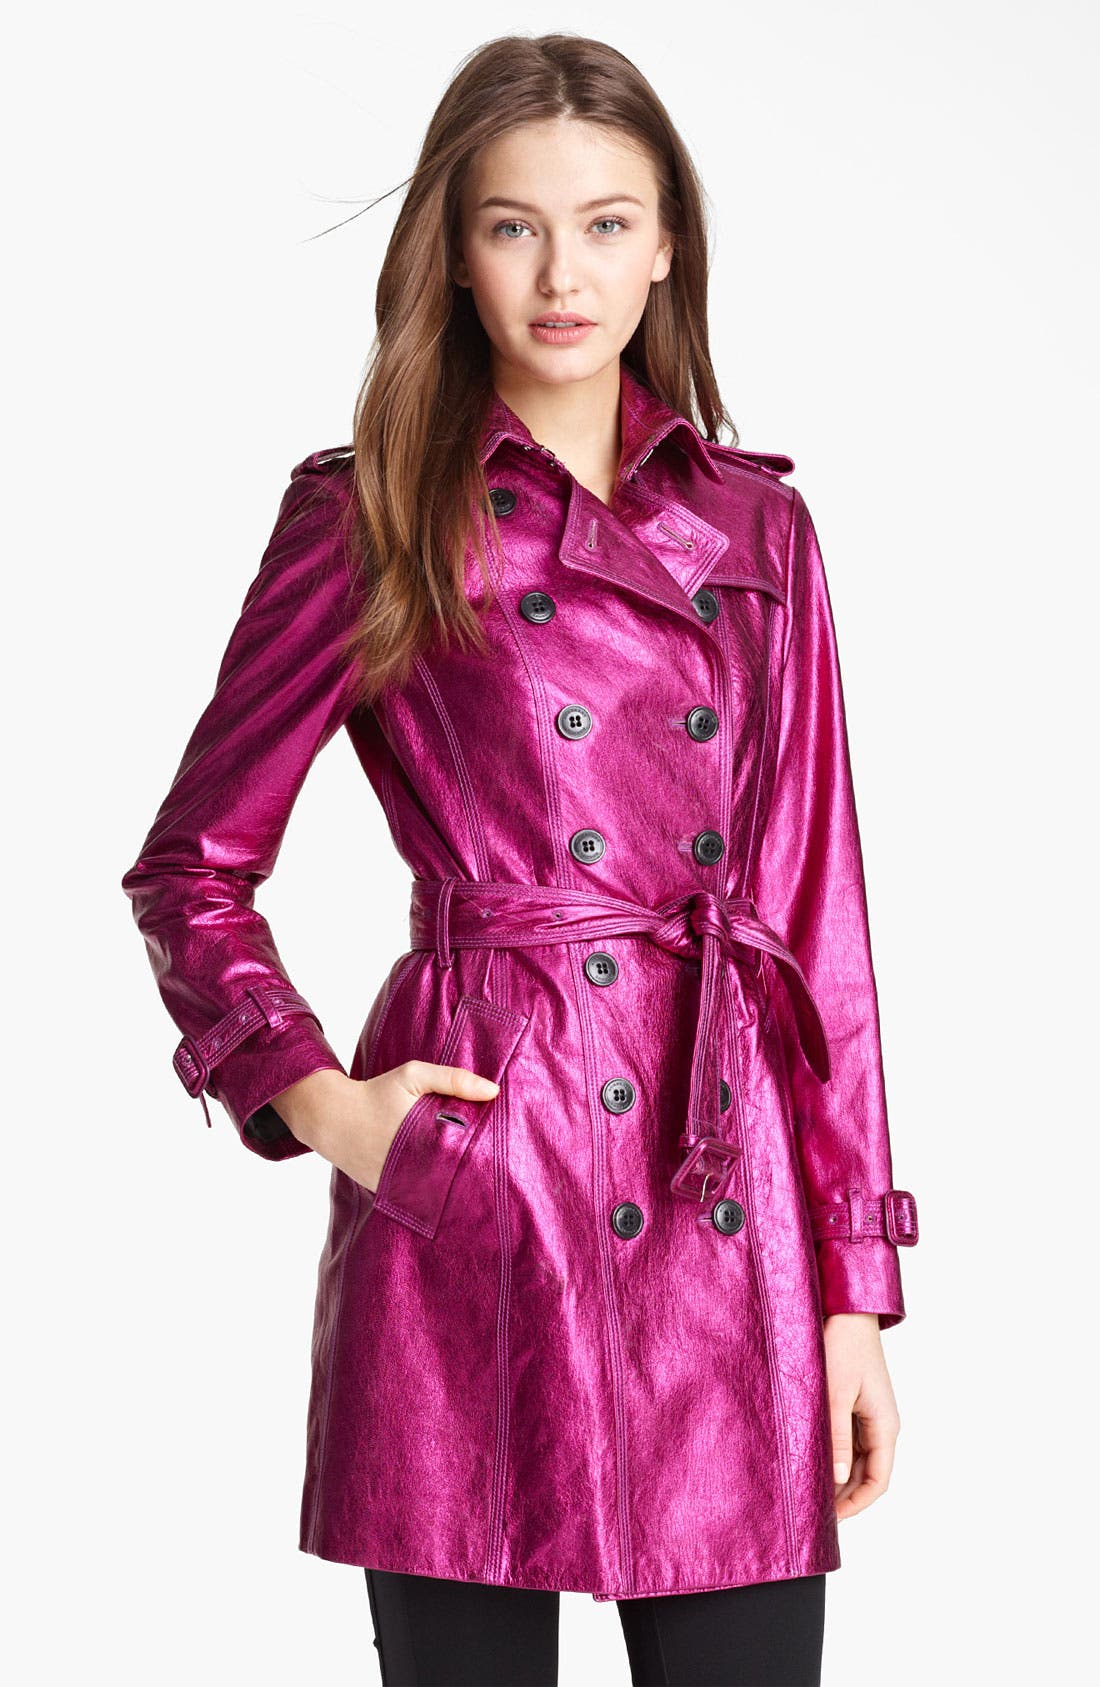 London Metallic Leather Trench Coat,                         Main,                         color, 652